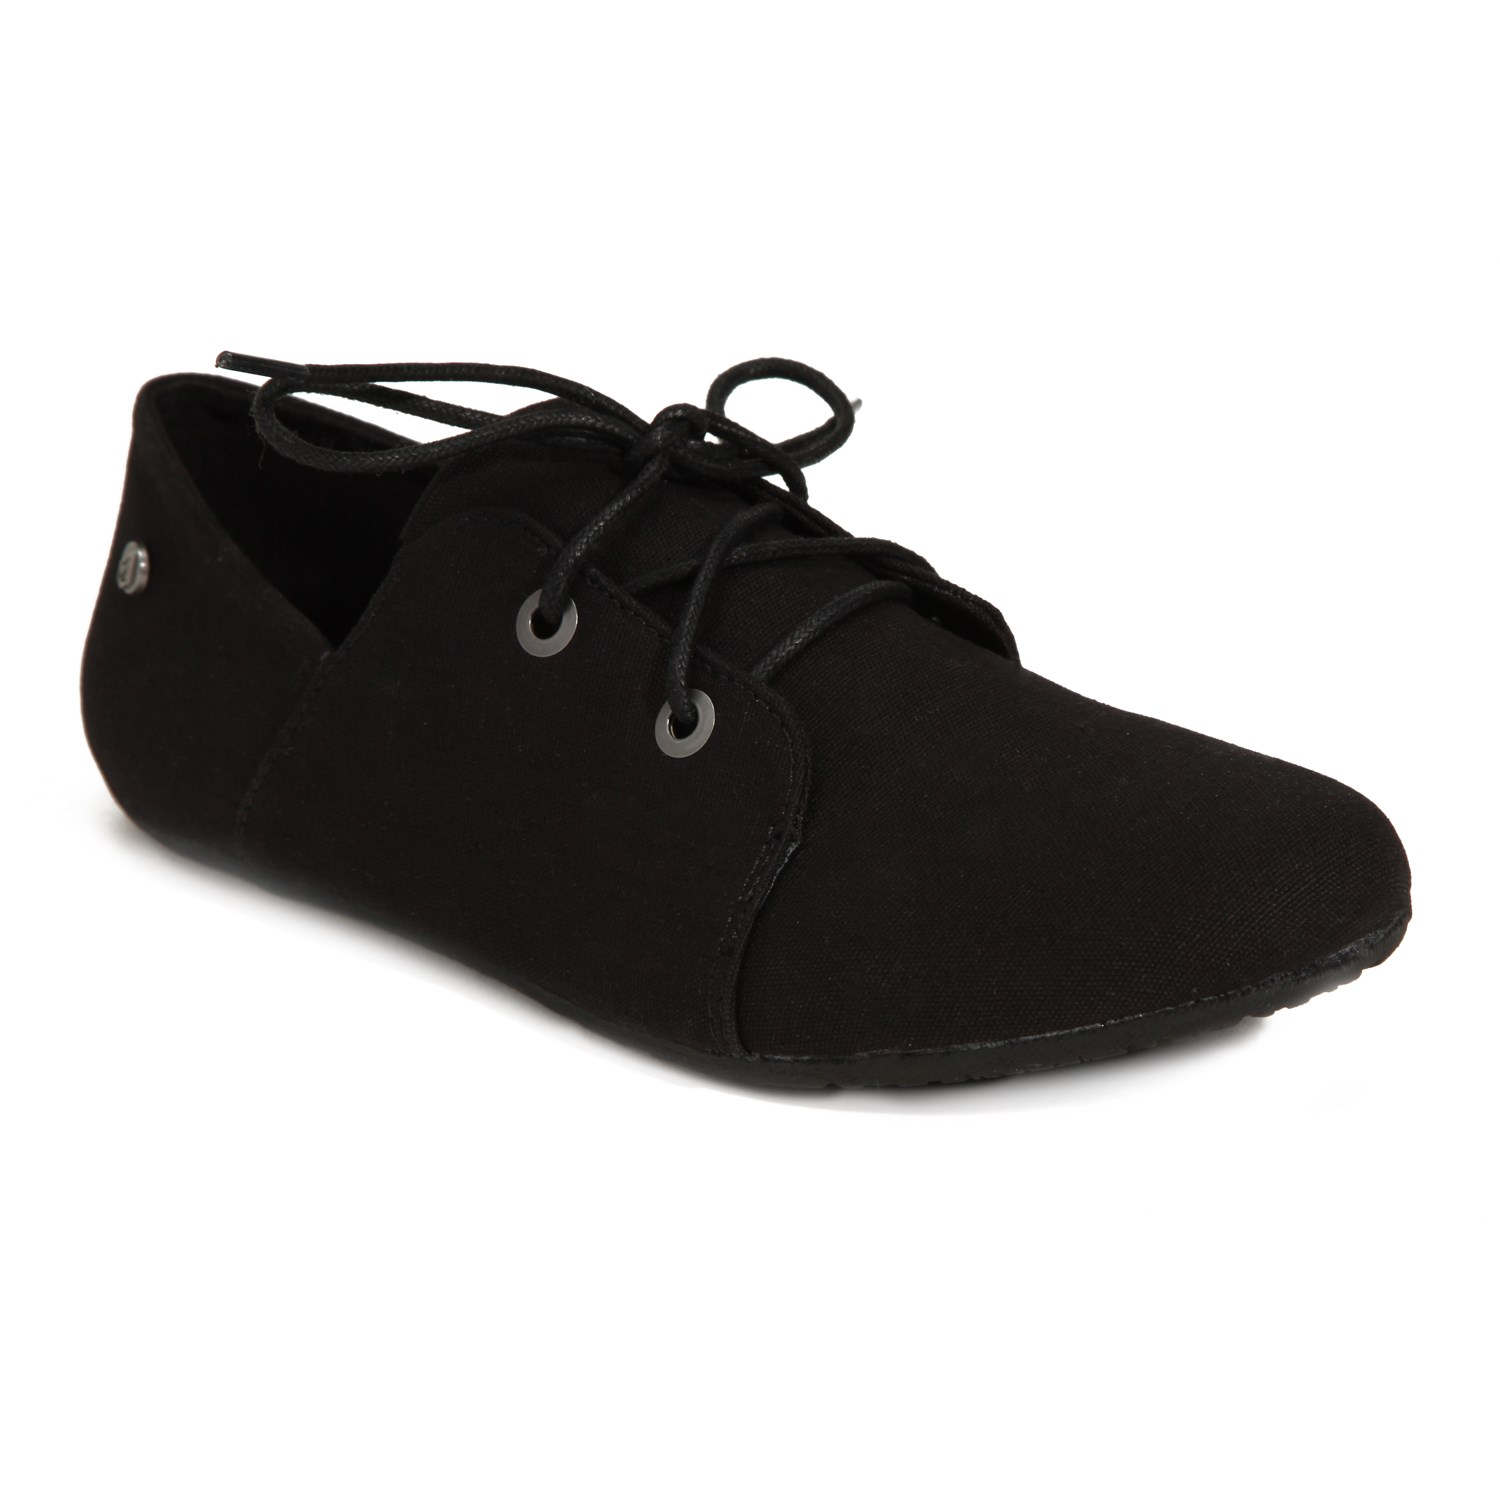 Women's Volcom Shoes | evo outlet